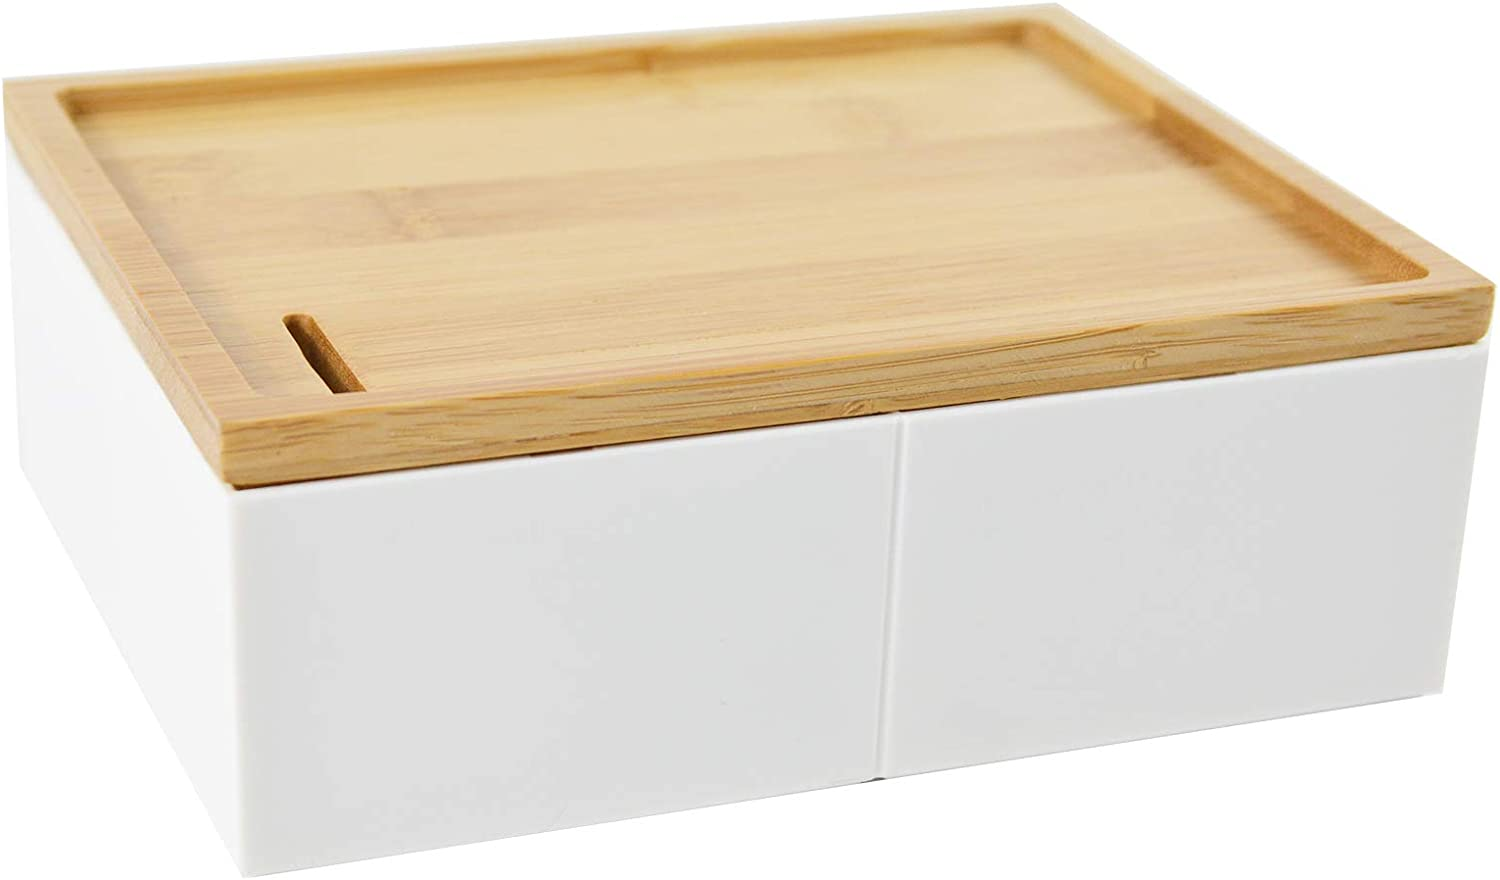 Desk Organizer Box for Coins Keys Small White Box for Drawer, Closet, Shelf, Dresser, Accessory, Storage Box with Divider and Bamboo Lid